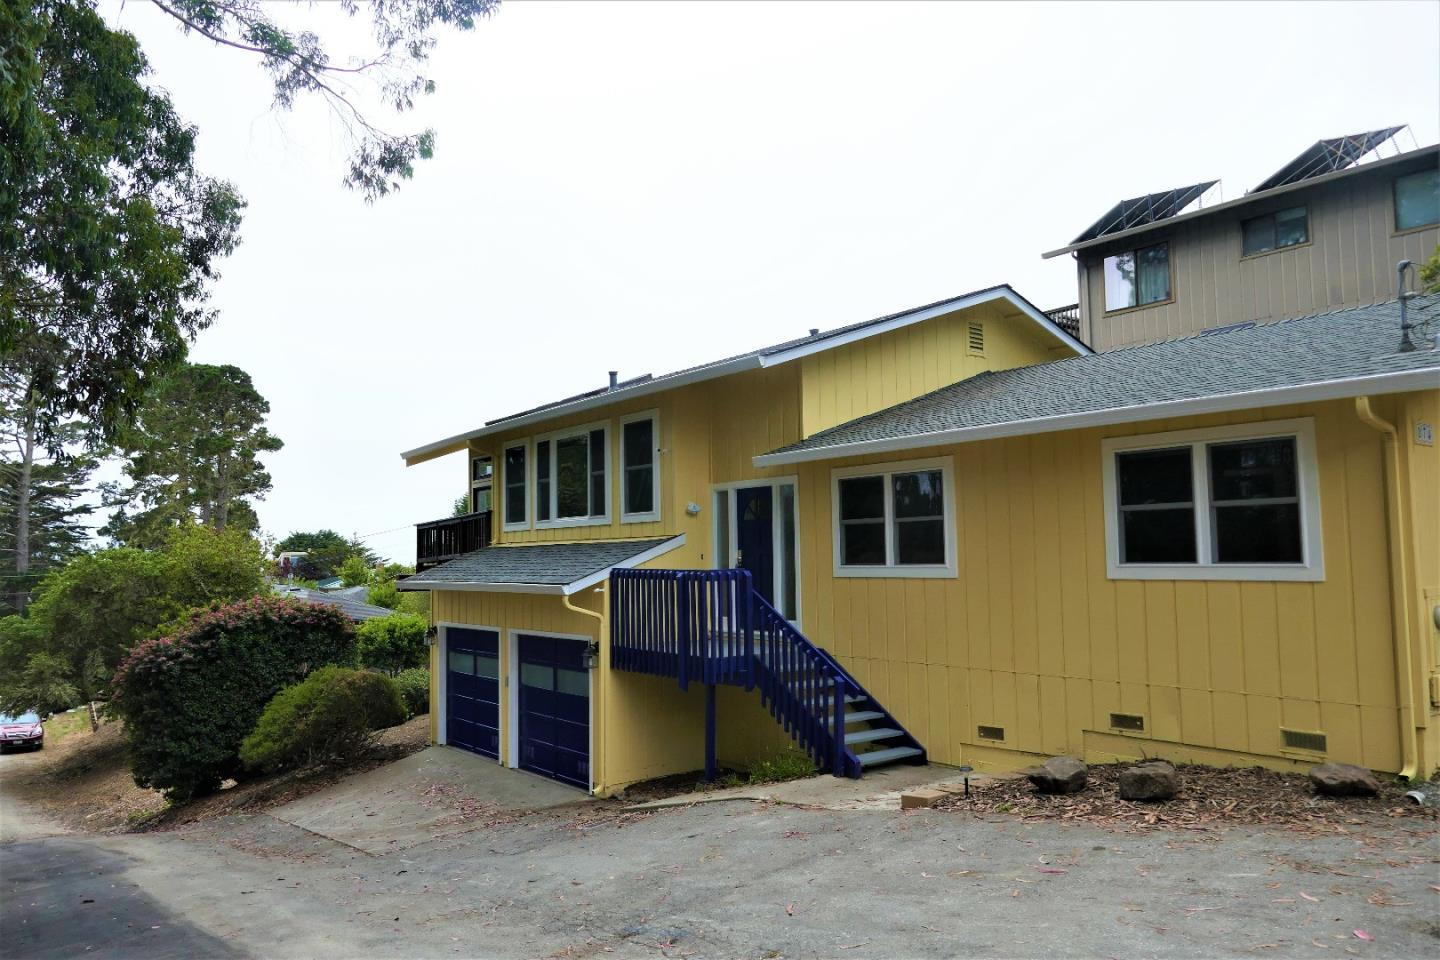 Single Family Home for Sale at 874 Buena Vista Street Moss Beach, California 94038 United States